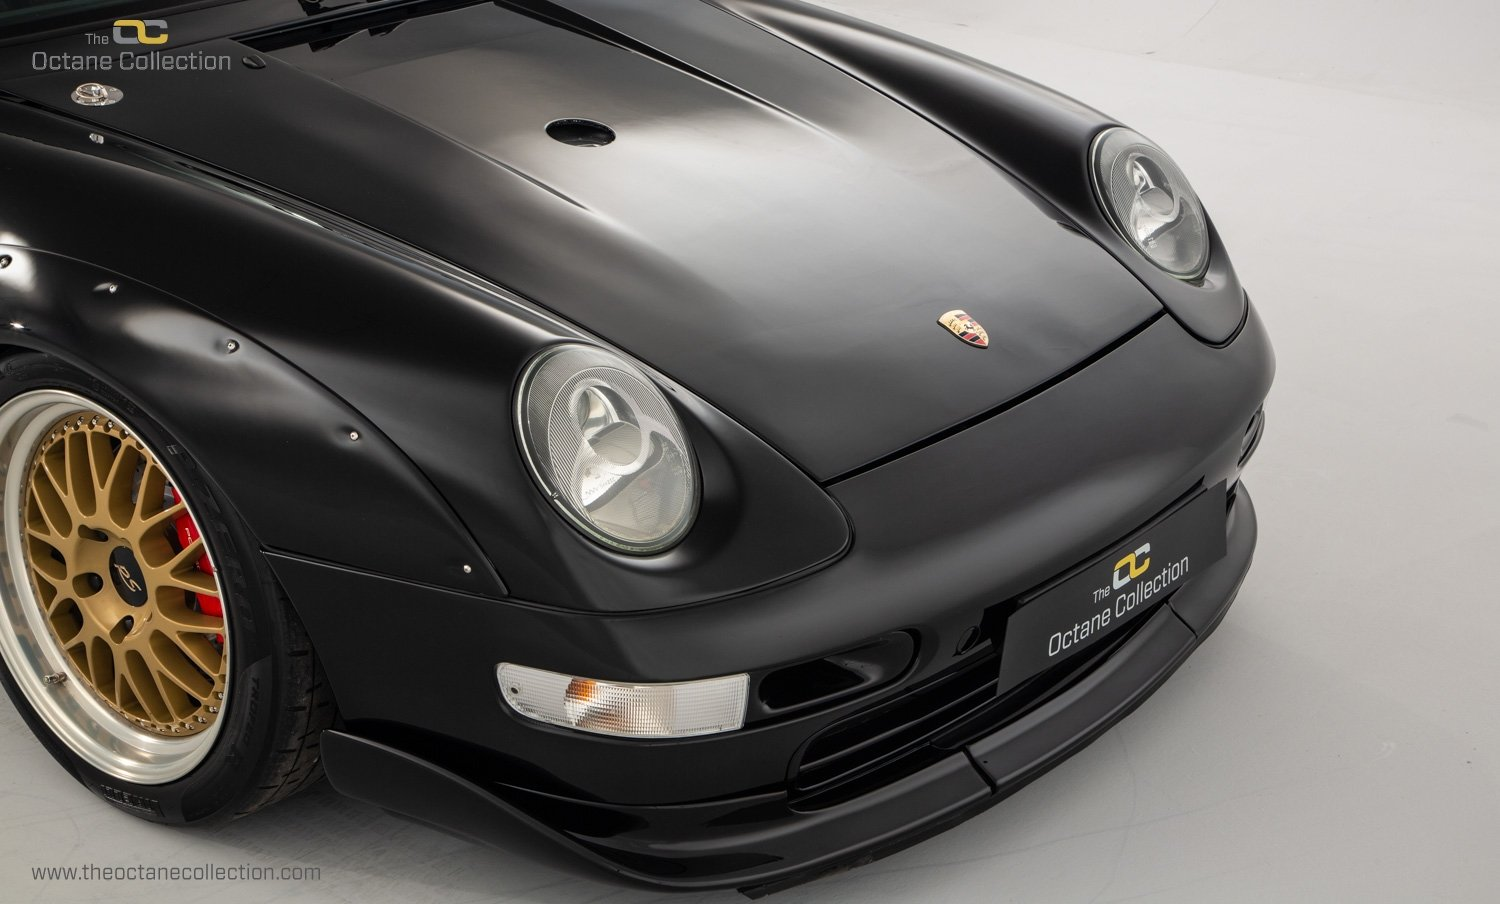 1995 PORSCHE 911 (993) RS 'BLACK SNAKE' For Sale (picture 6 of 23)